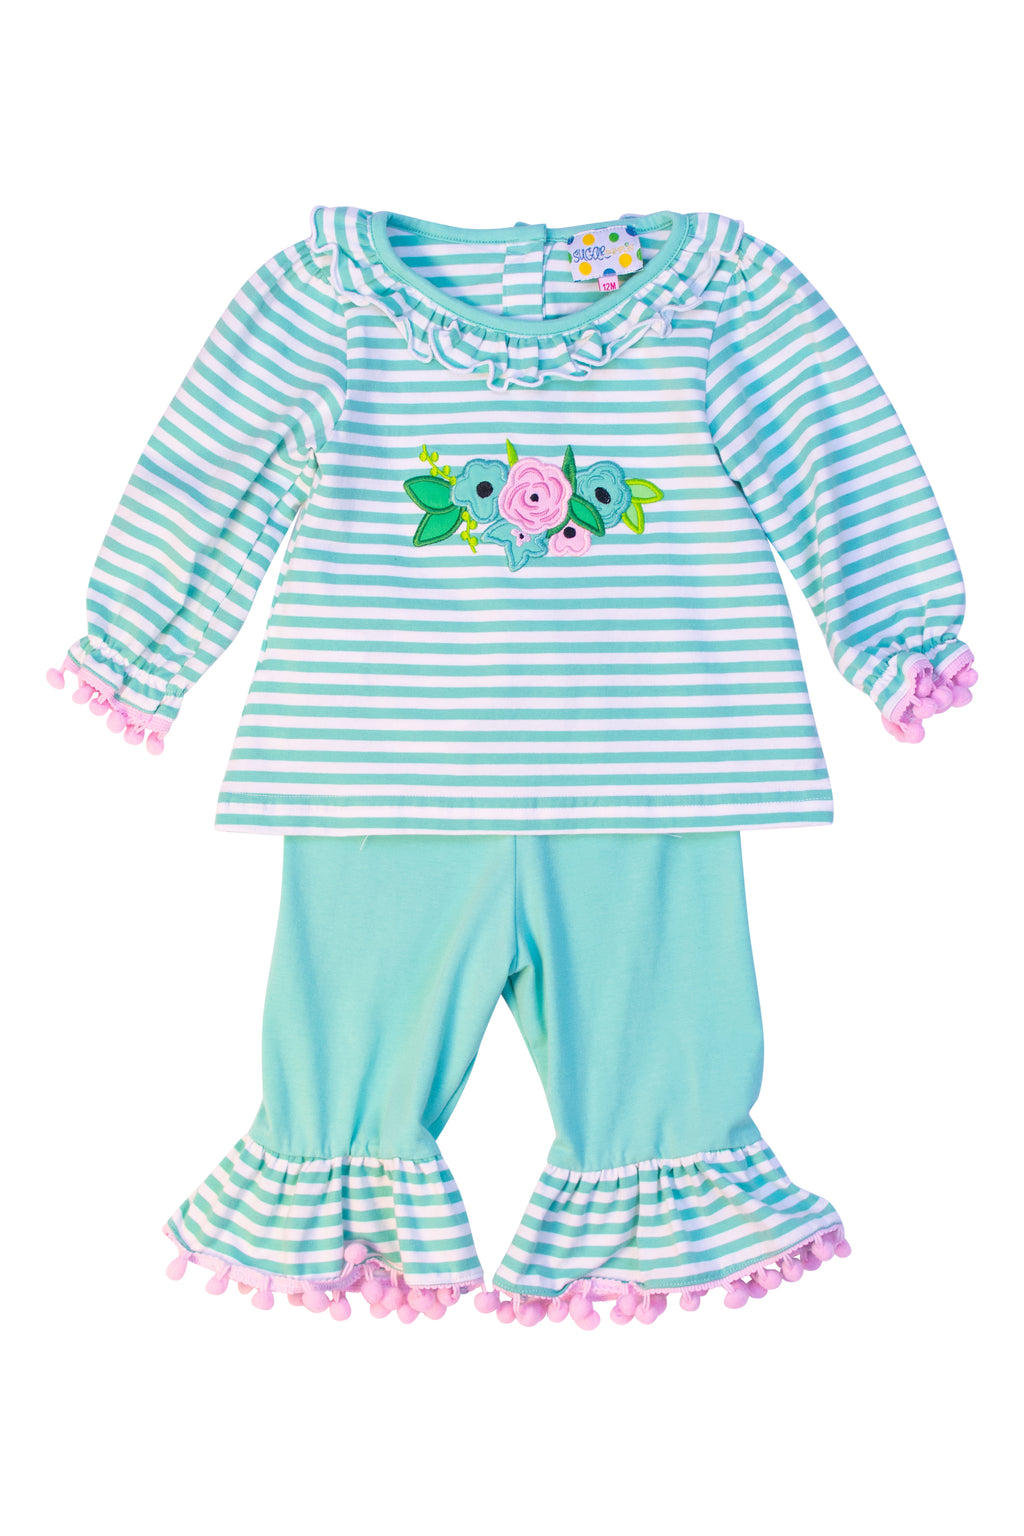 Girls Knit Mint Floral Applique Pant Set